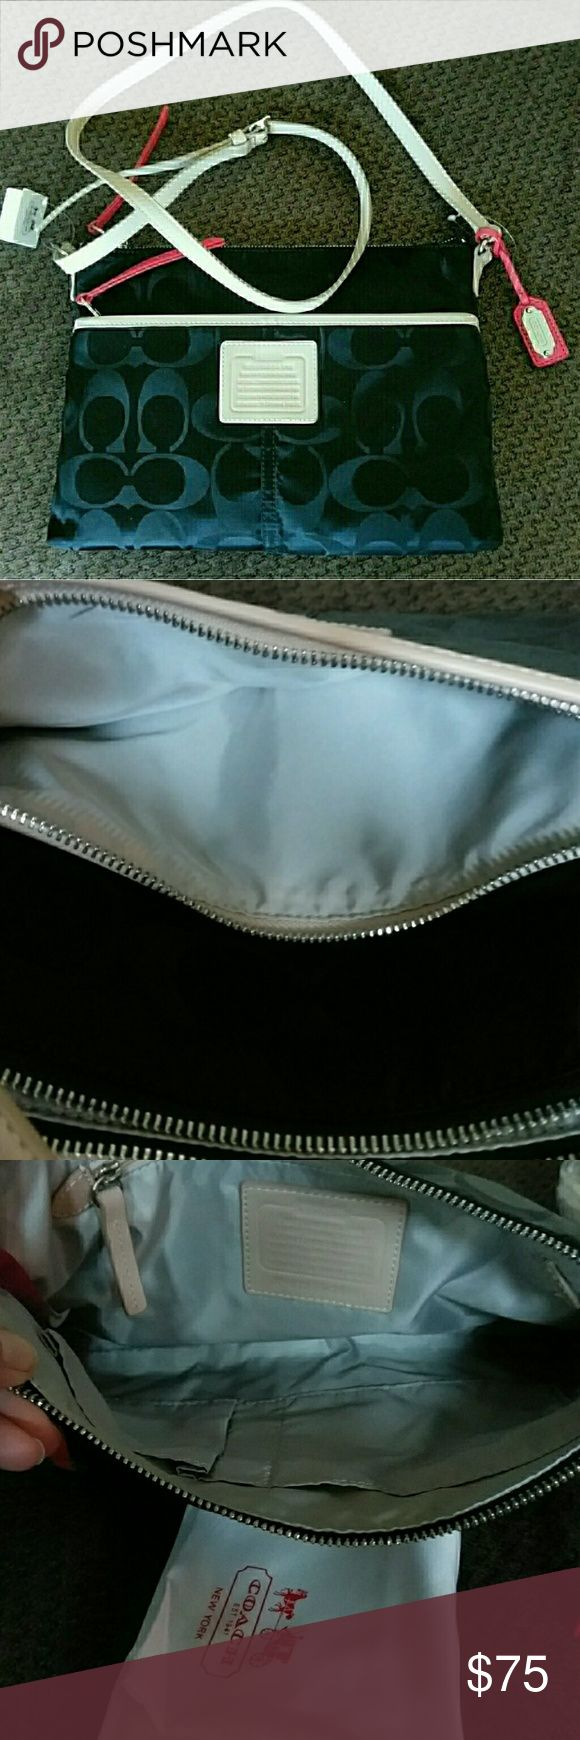 """Coach Legacy Weekend Signature Hippie Coach Legacy Weekend Signature Hippie NWT Black Nylon comes with dust bag.  11""""L x8""""H x1"""" new never used perfect condition retails for $148 Coach Bags"""